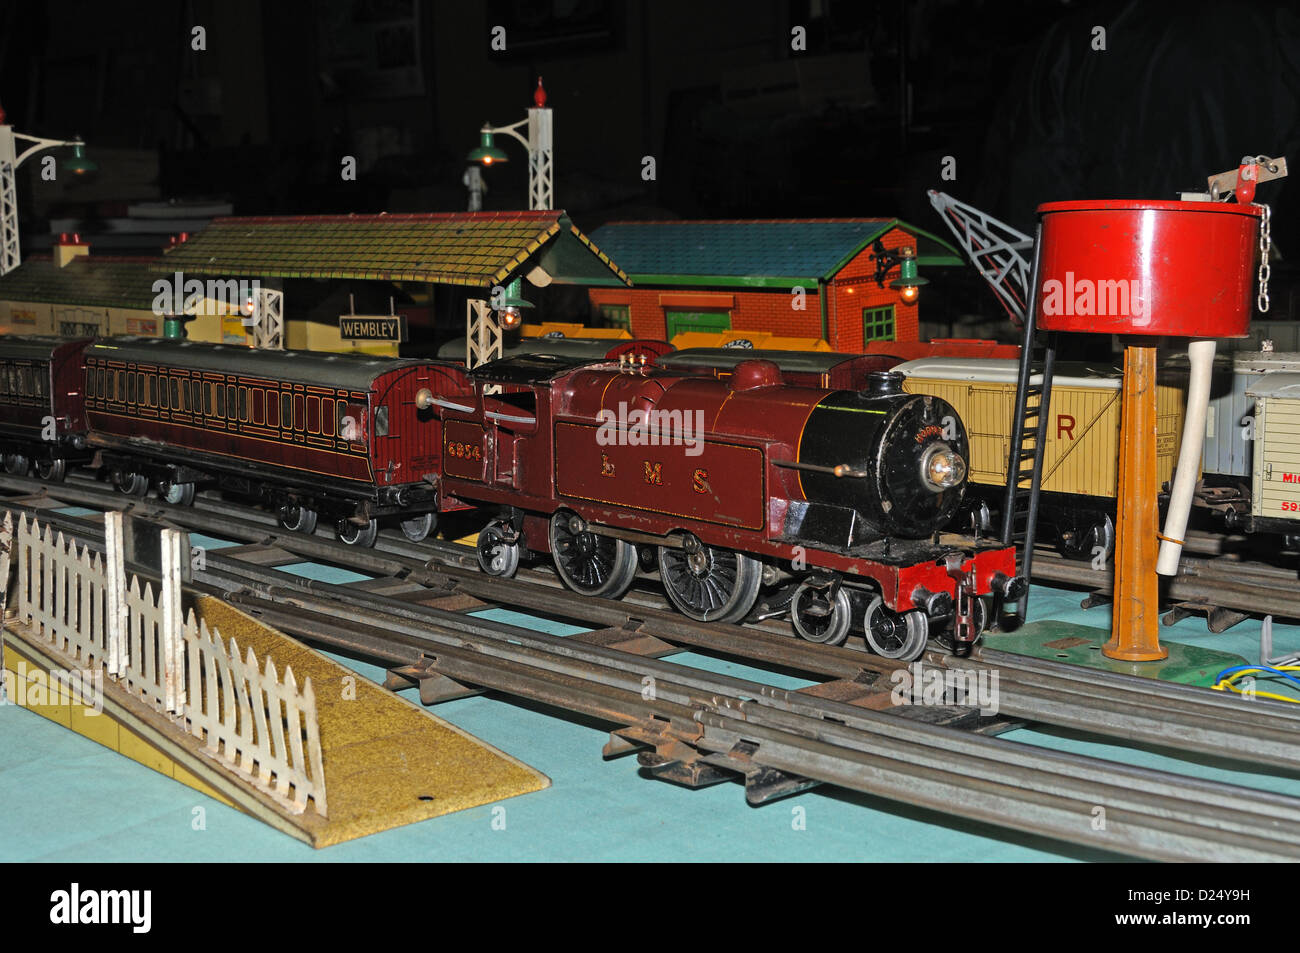 Vintage 0 Gauge Hornby Trains from the late 1930s - Stock Image